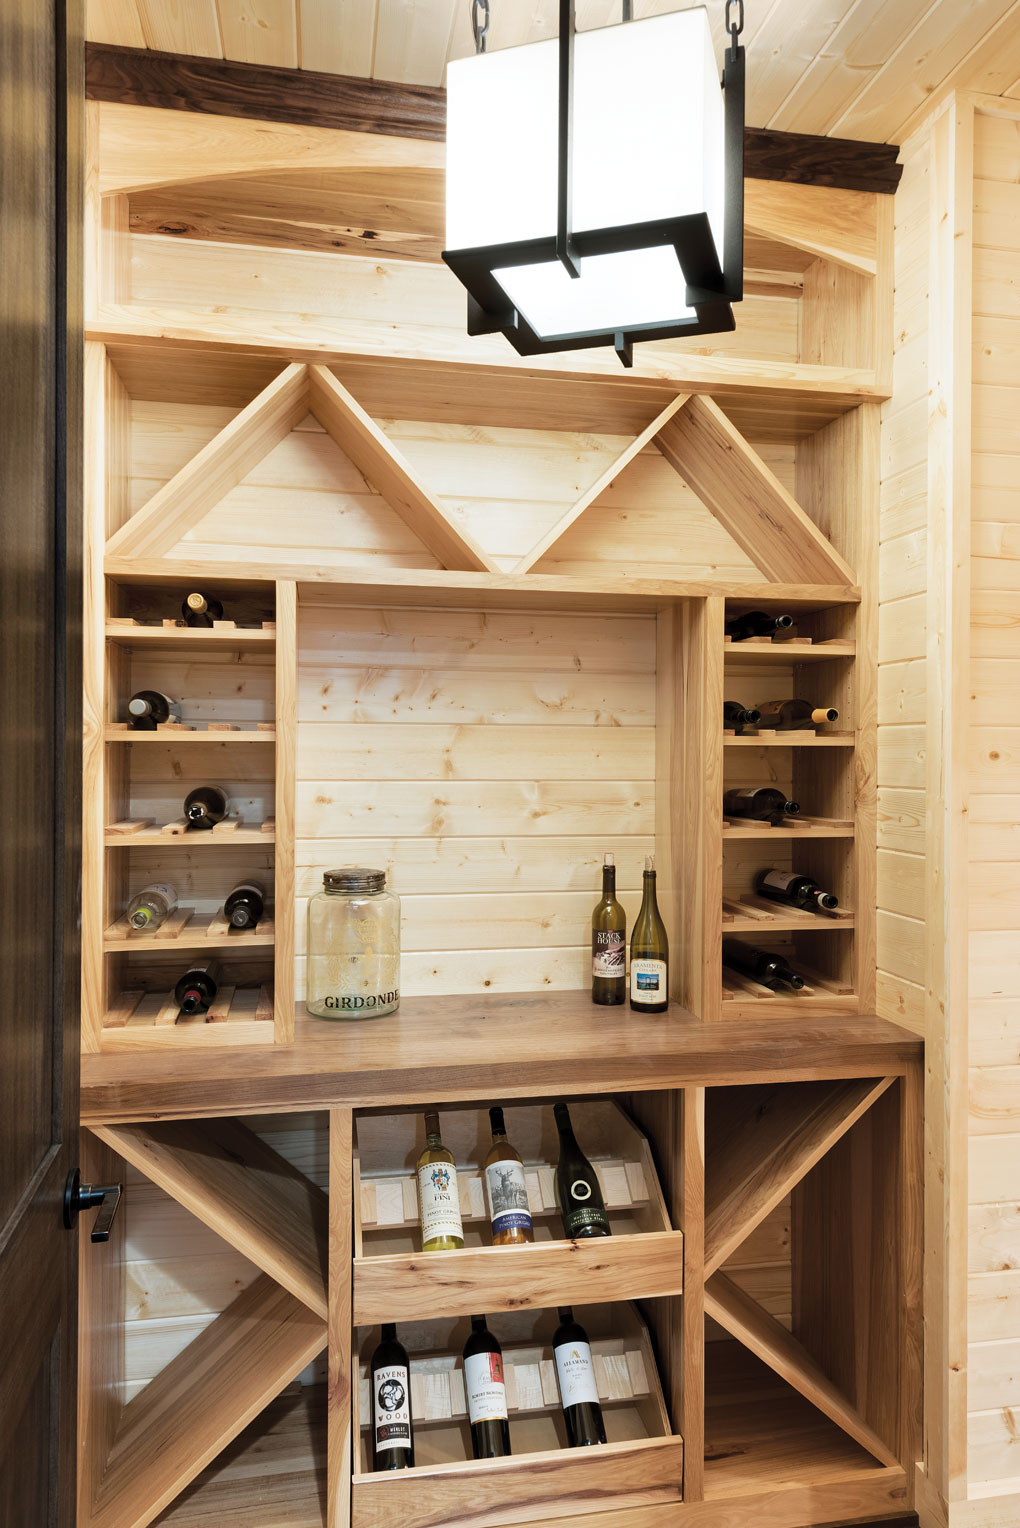 A knotty pine- and hickory-lined wine cellar stocked with bottles of wine.